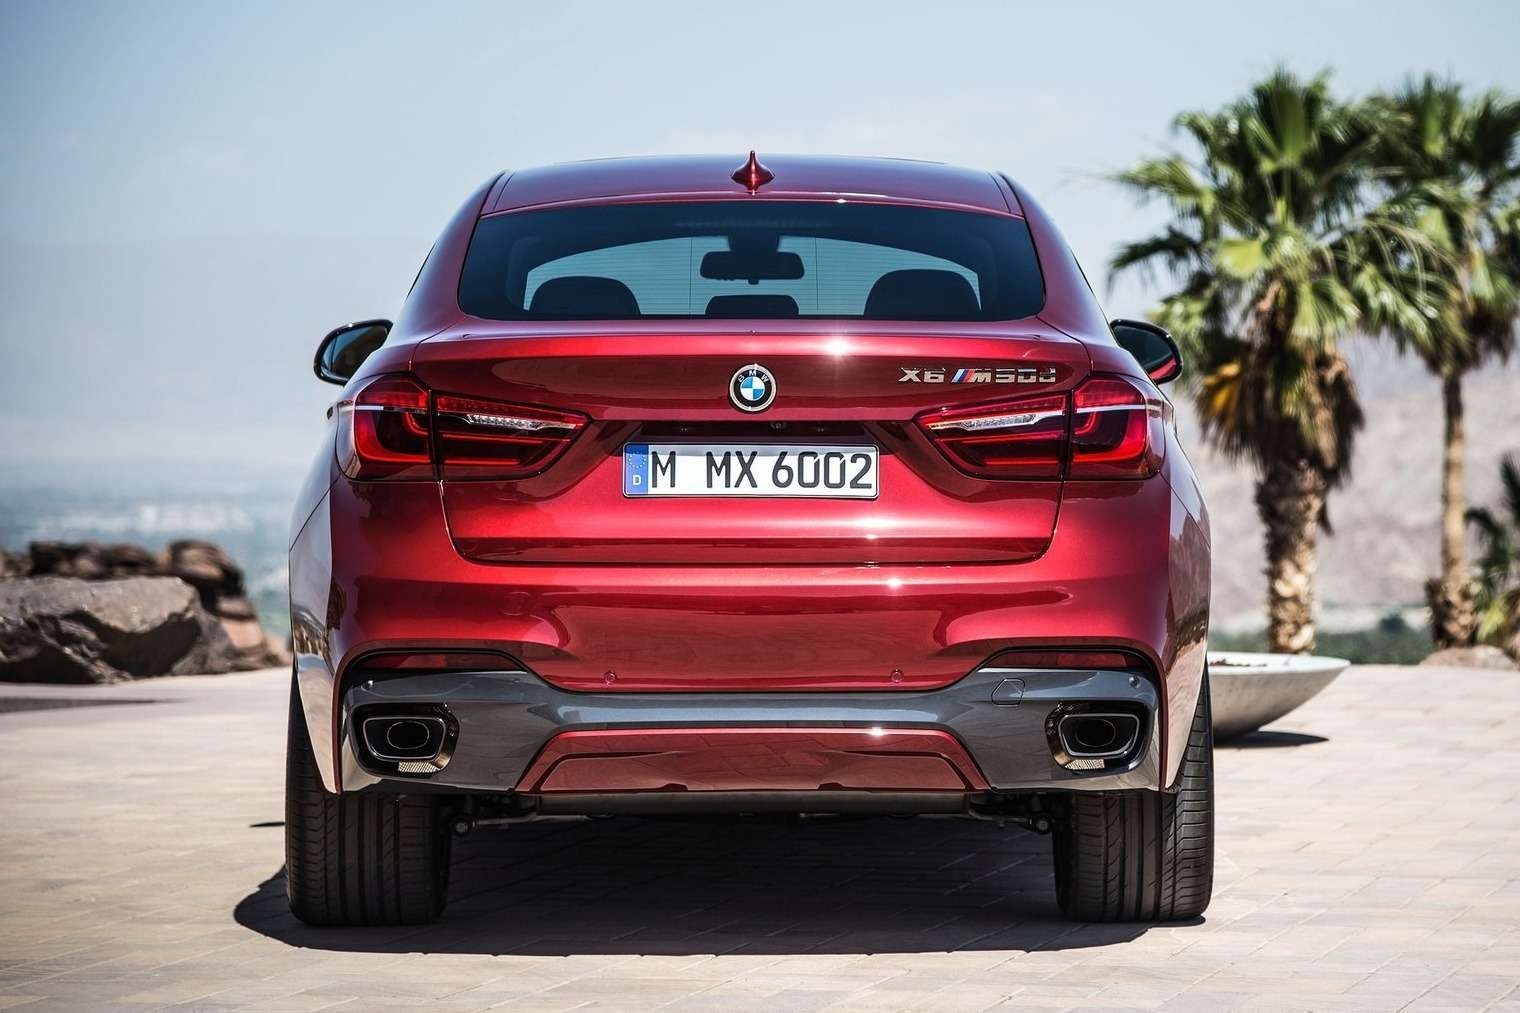 BMW-X6_2015_1600x1200_wallpaper_30